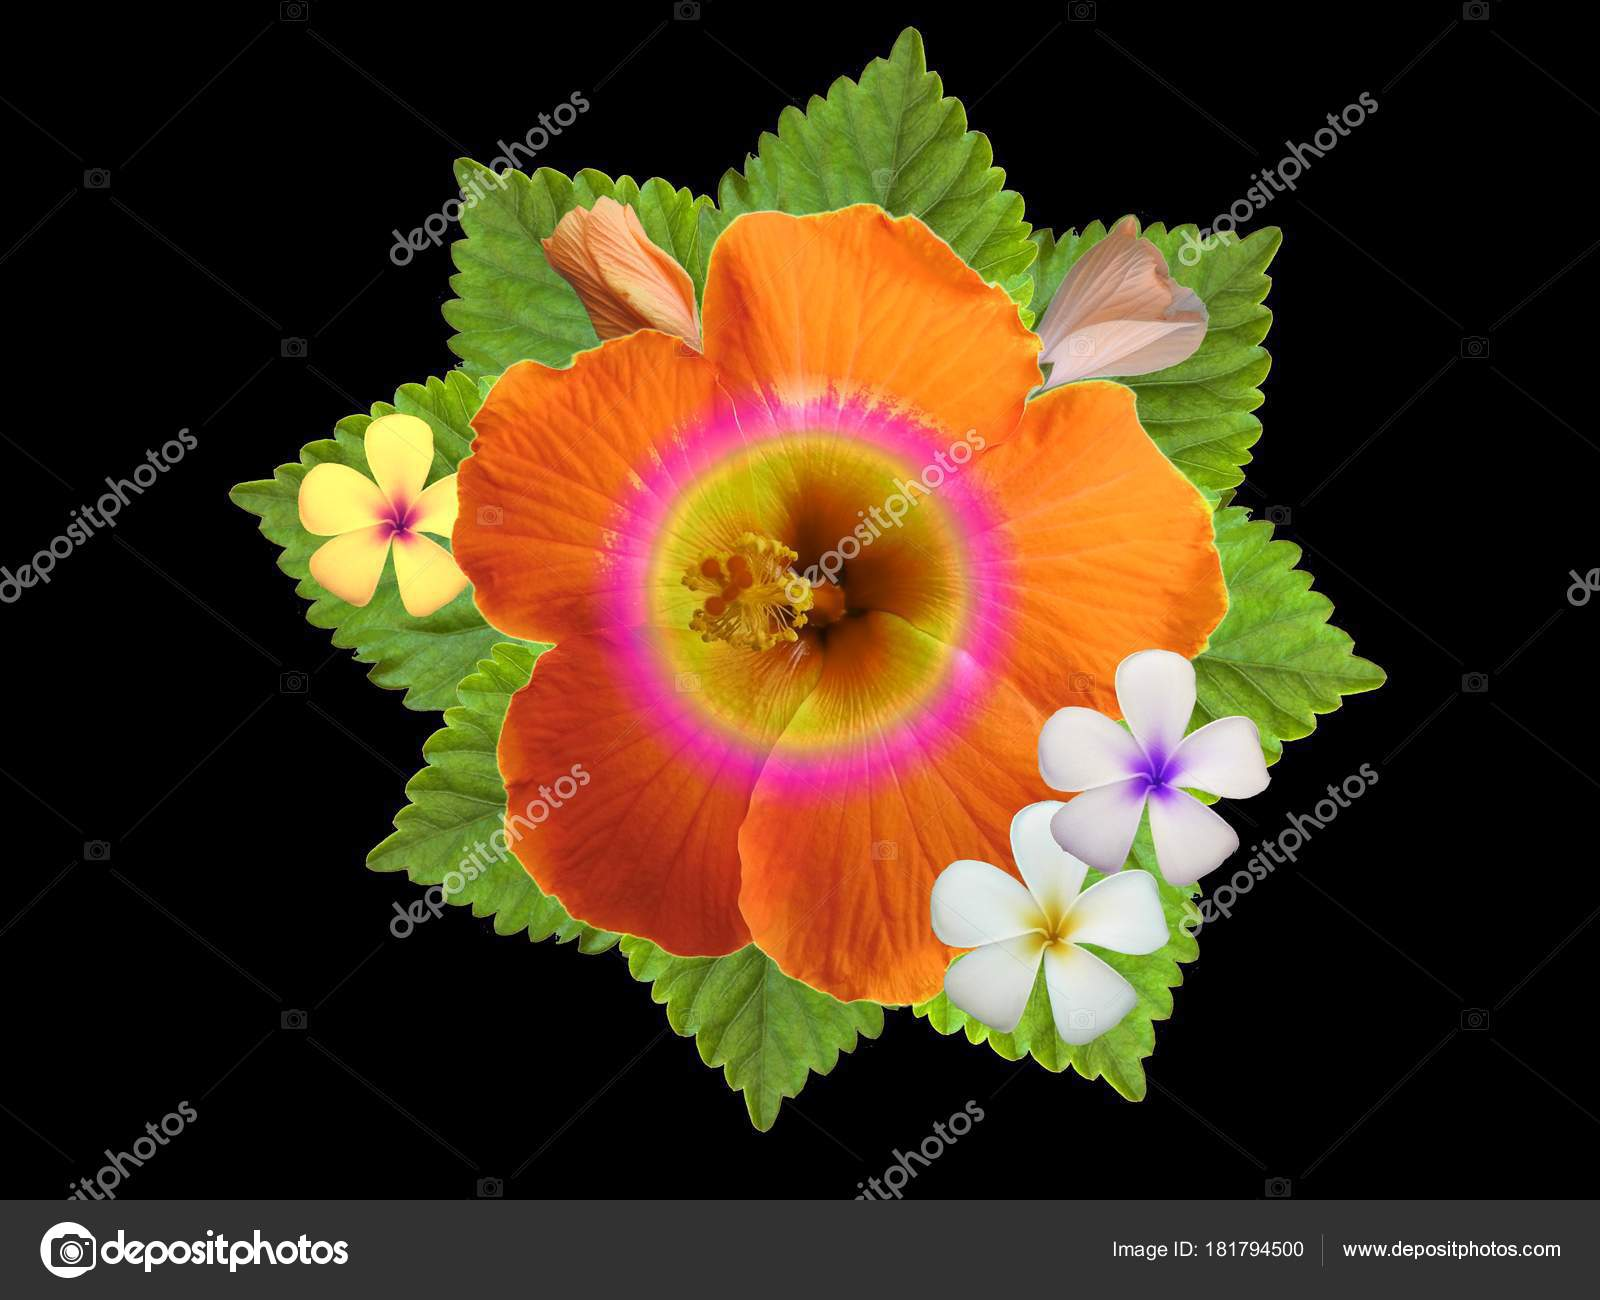 Hibiscus flowers different colors stock photo schwerin 181794500 hibiscus flowers different colors stock photo izmirmasajfo